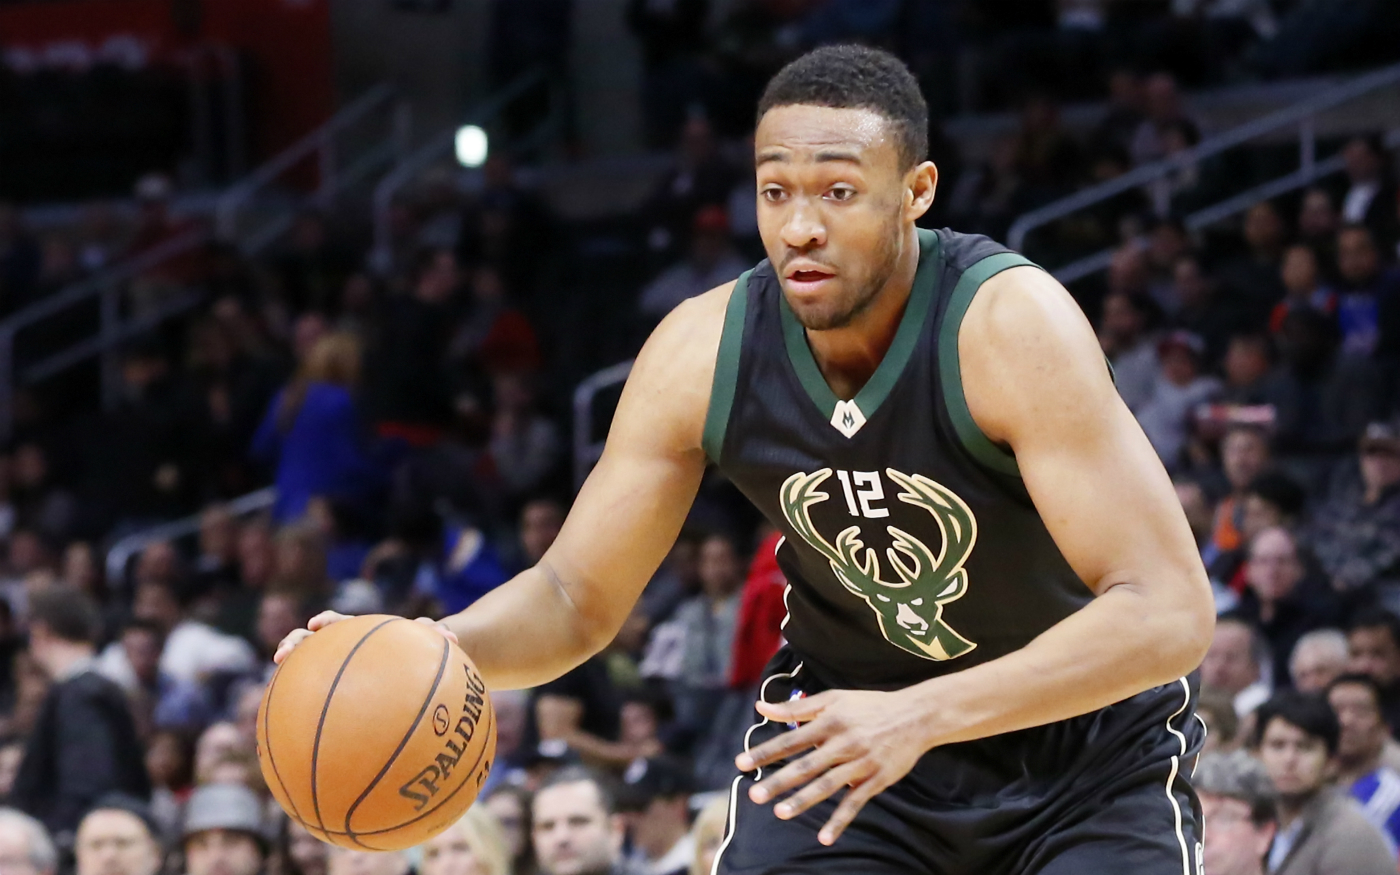 Jabari Parker patron des Bucks contre Dallas